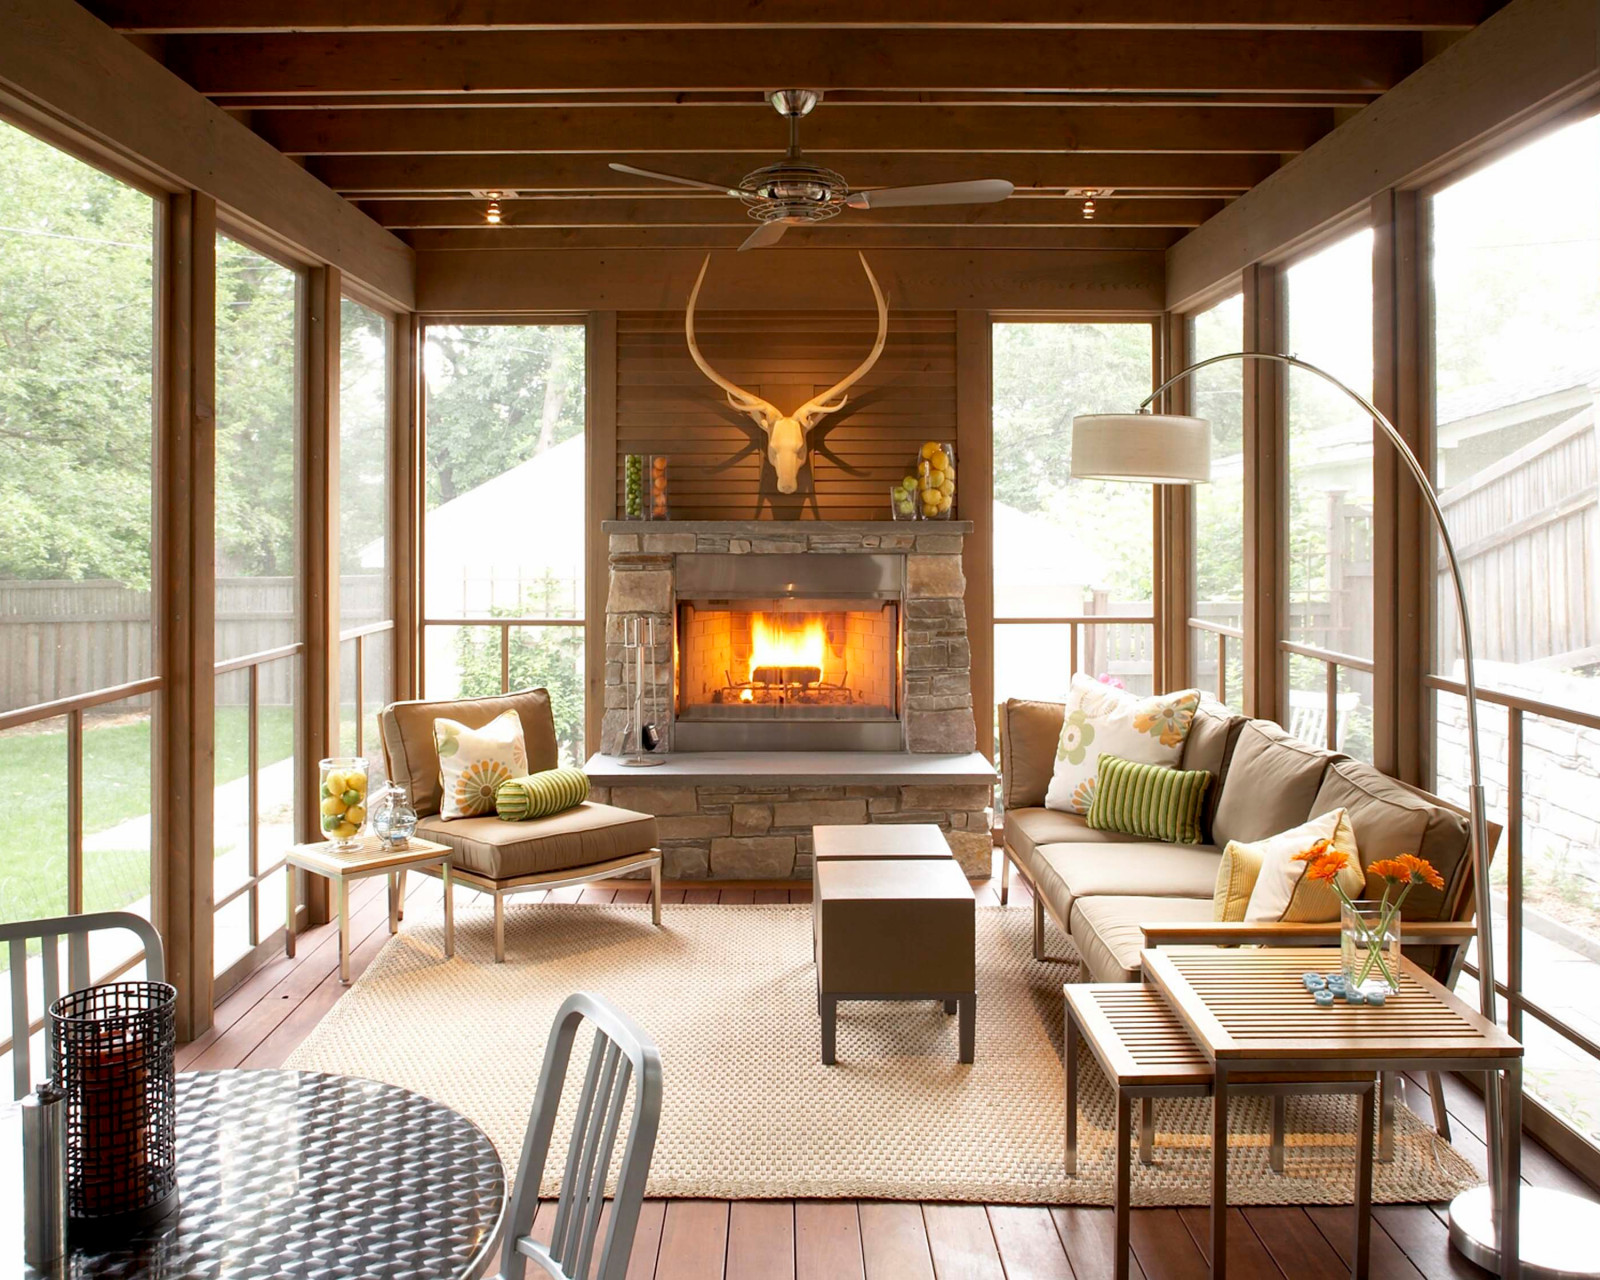 20 Most Beautiful Screened Porch With Fireplace Ideas For A Cozy Outdoor Living Jimenezphoto